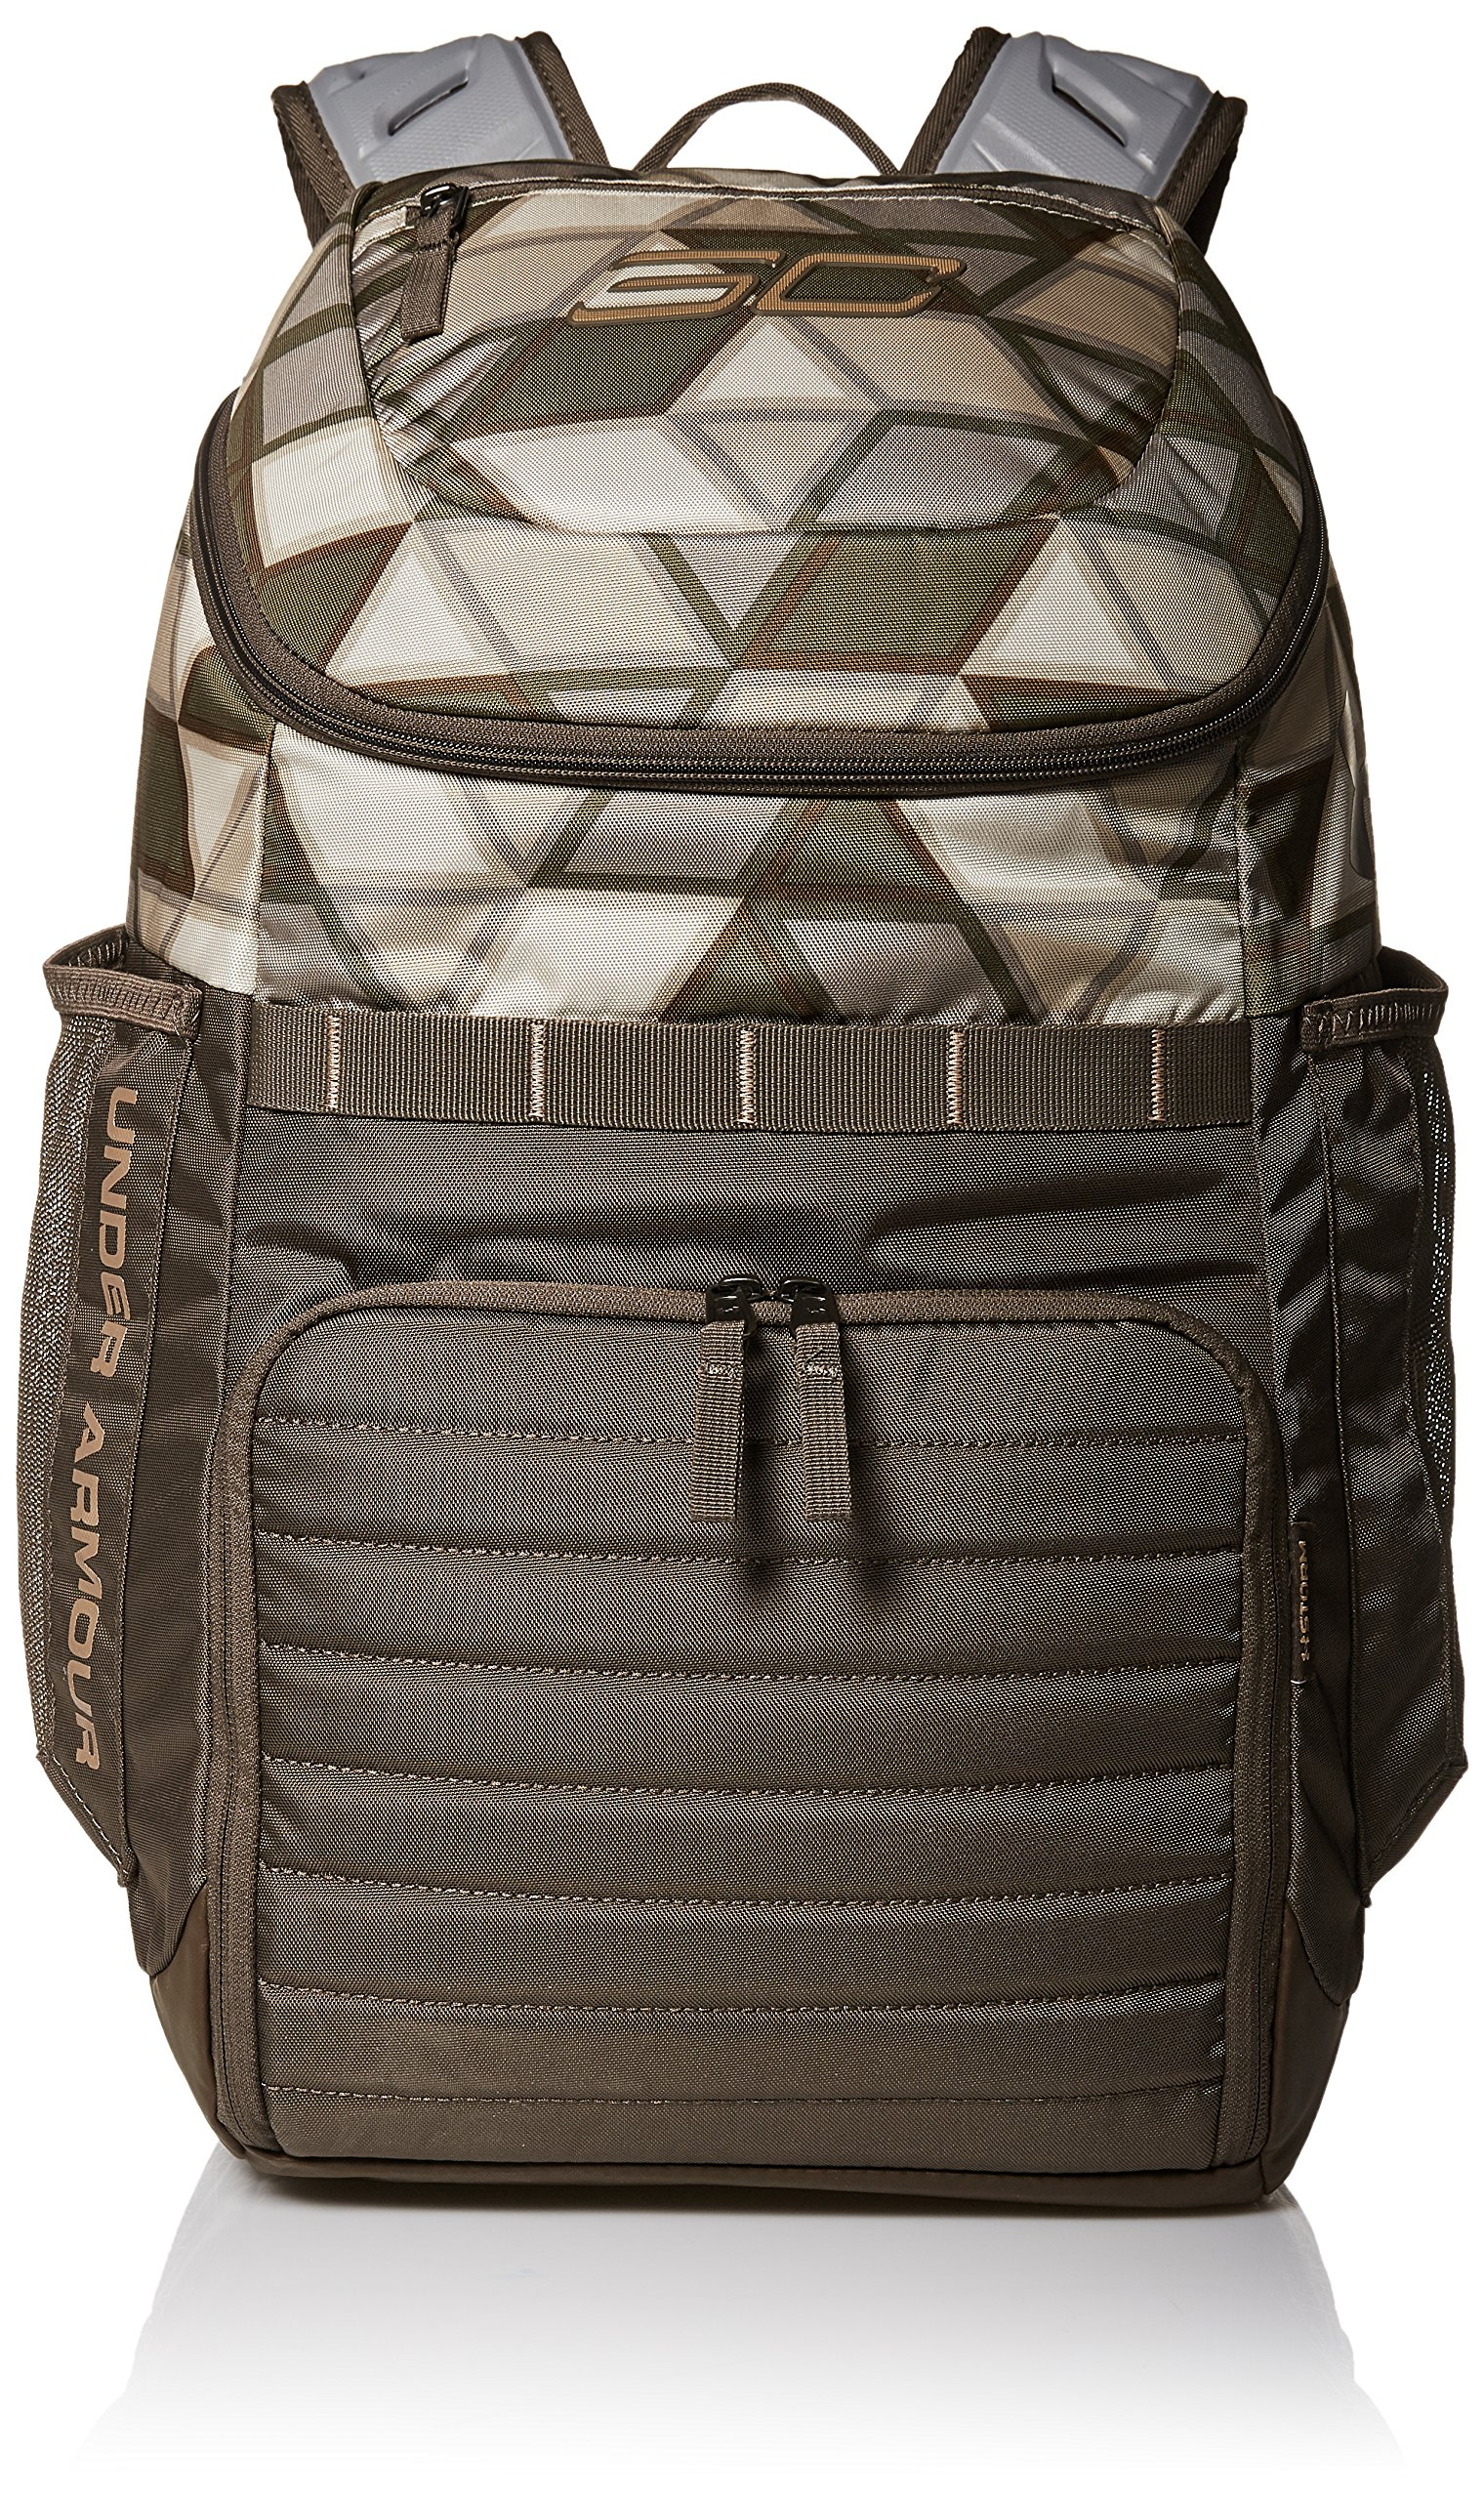 Under Armour SC30 Undeniable Backpack, Baja (272), One Size